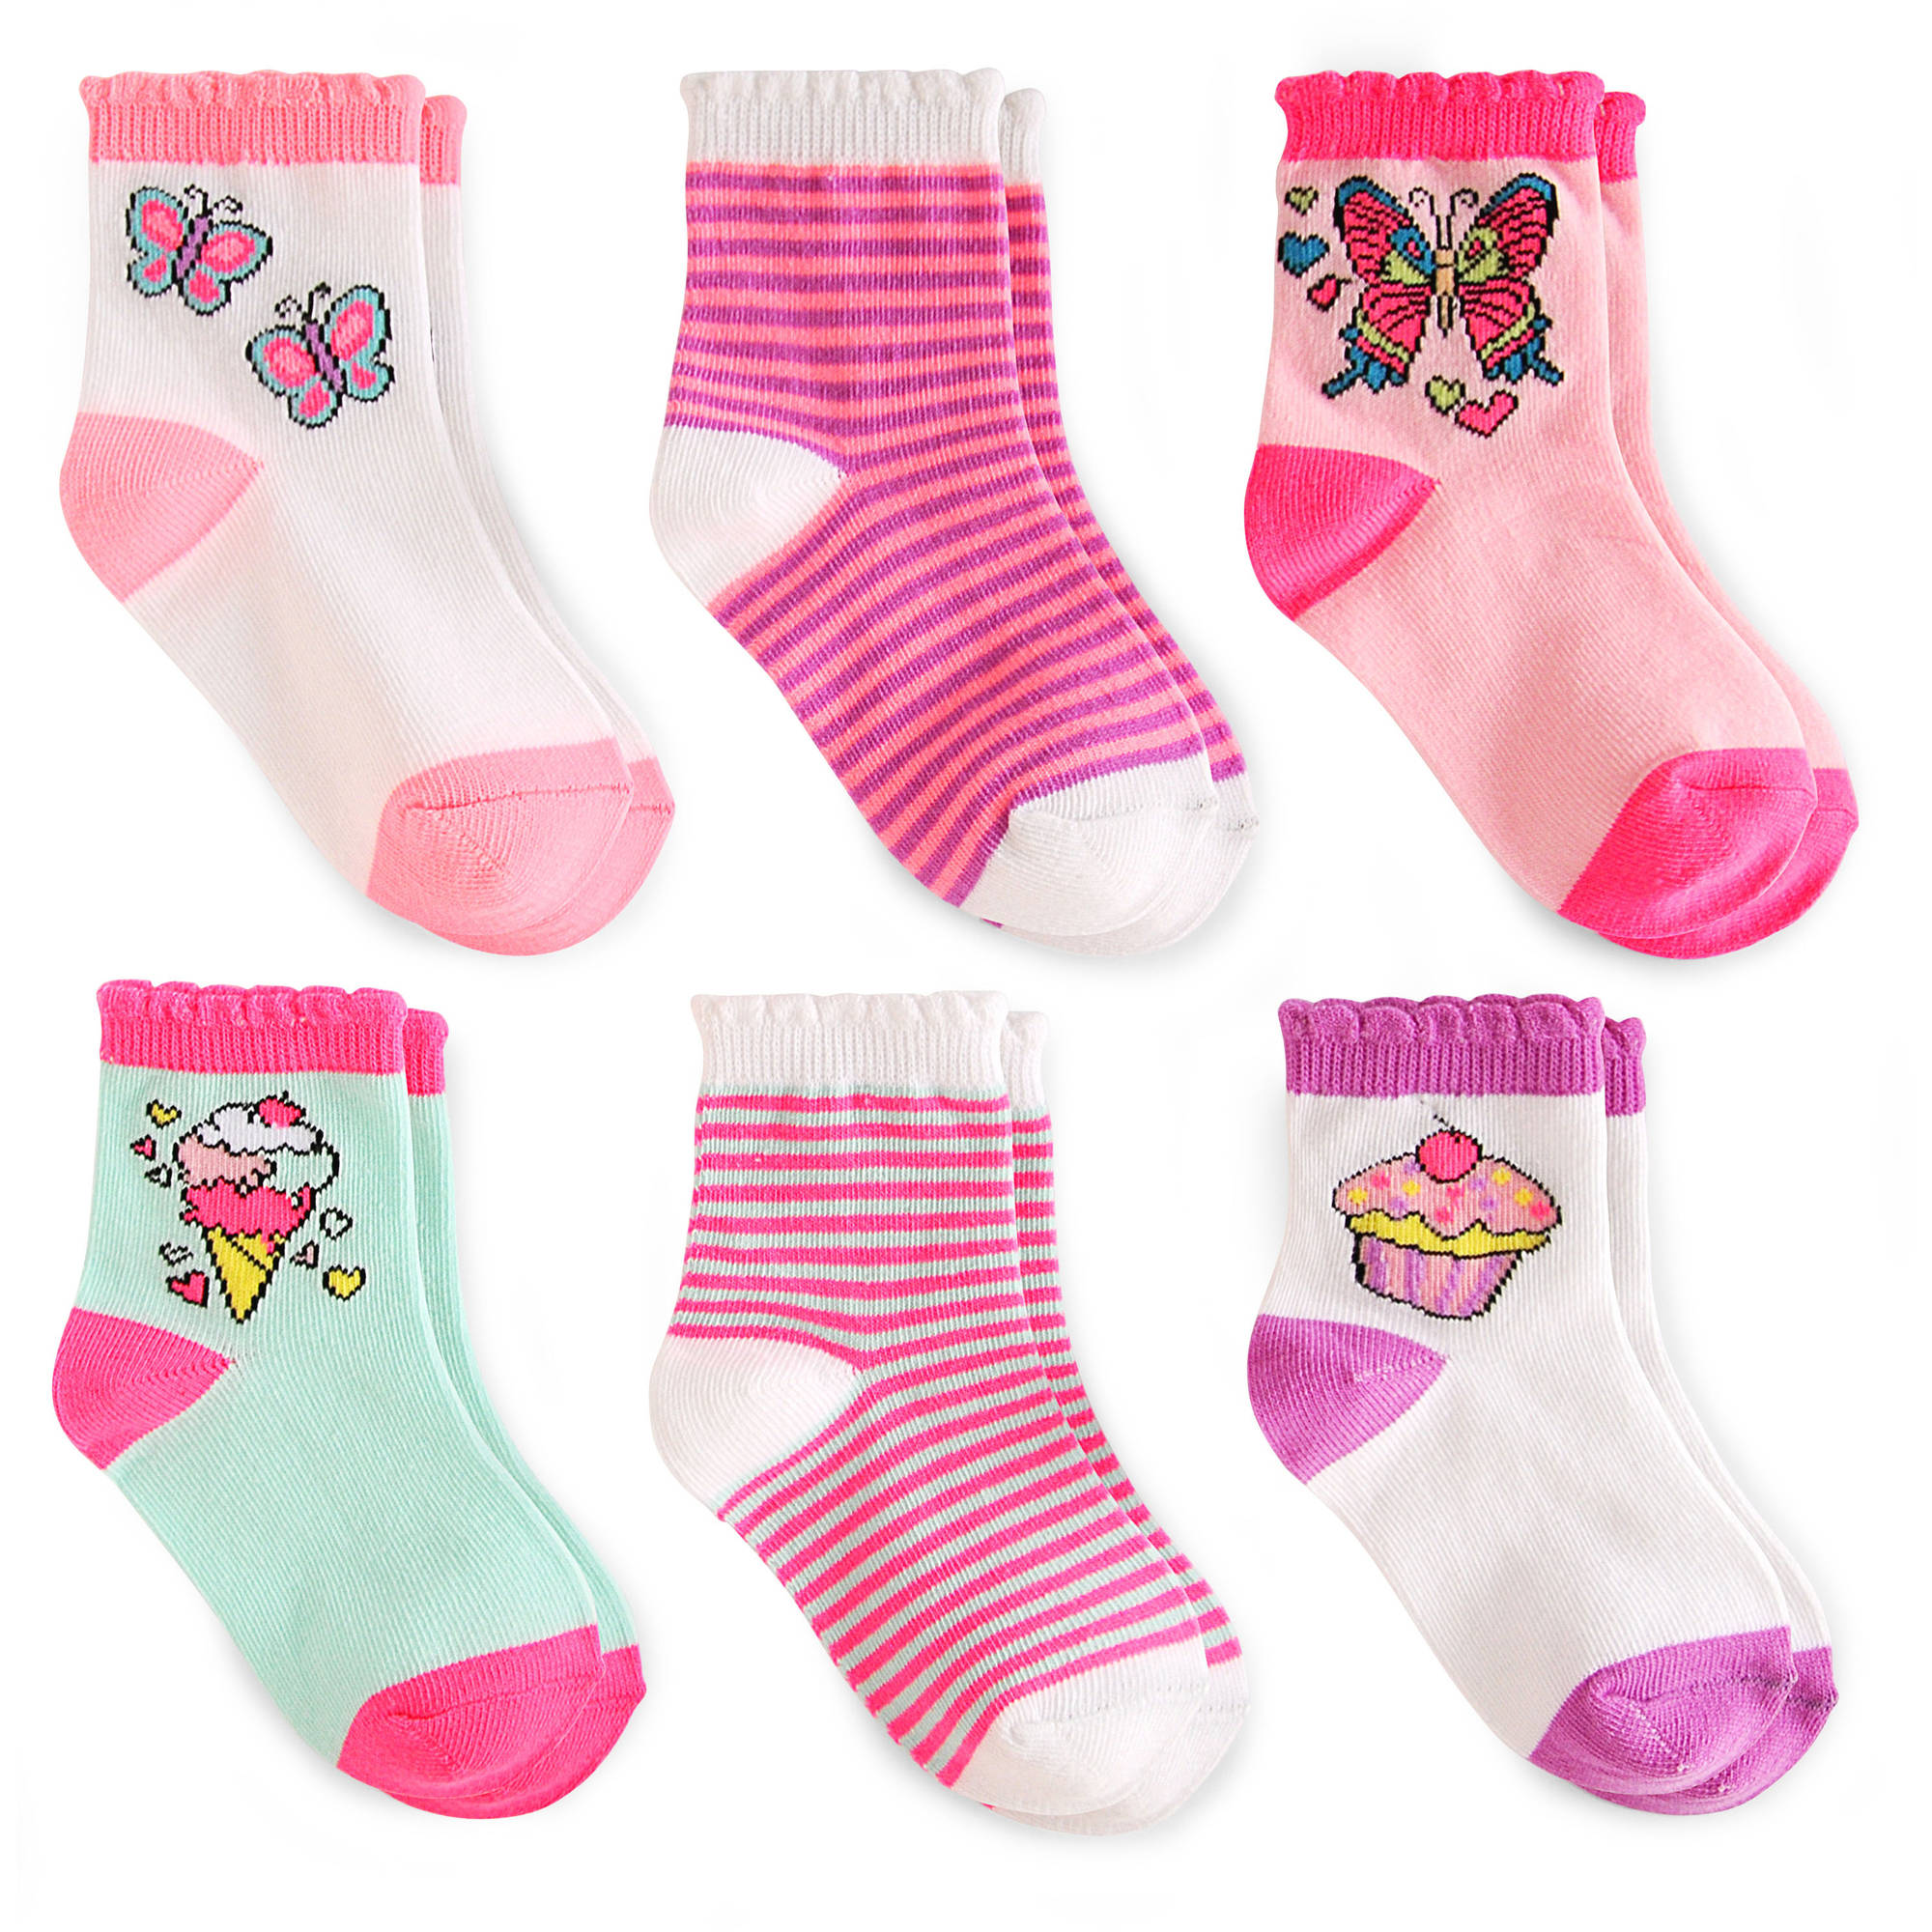 Garanimals Baby Toddler Girls Crew Socks Ages NB-5T, 6-Pack